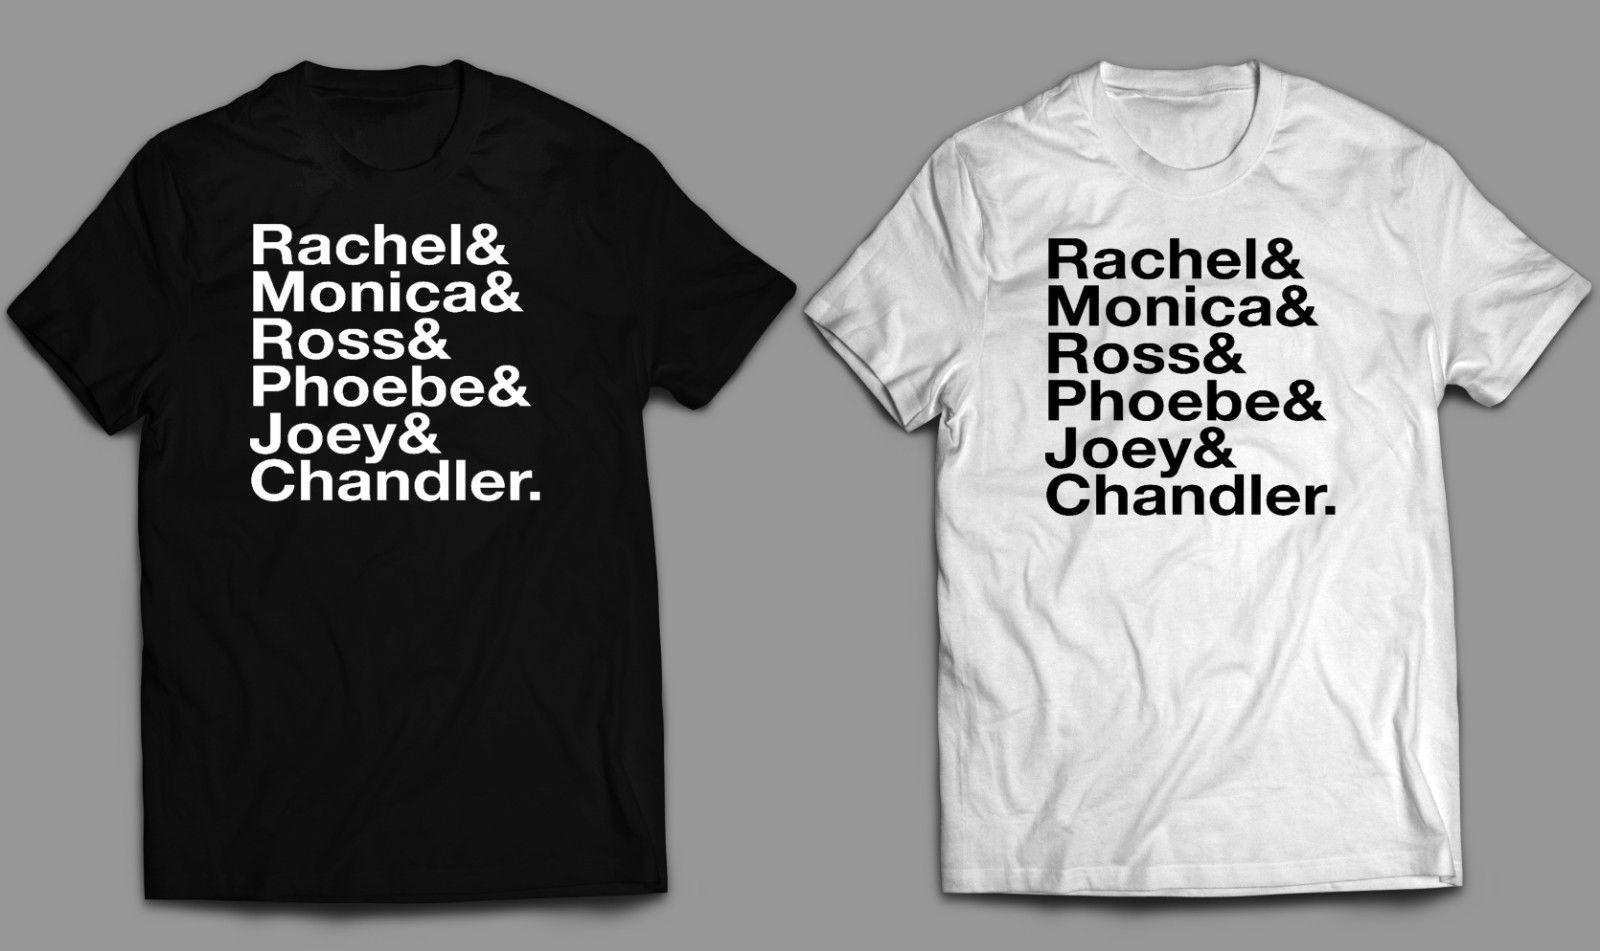 24d9d4aaae3 Friends TV Show T Shirt Or Iron On Diy Transfer Ross Rachel Joey Chandler  Monica Funny Unisex Casual Tee Gift Top Comedy T Shirt Humorous T Shirt  From ...